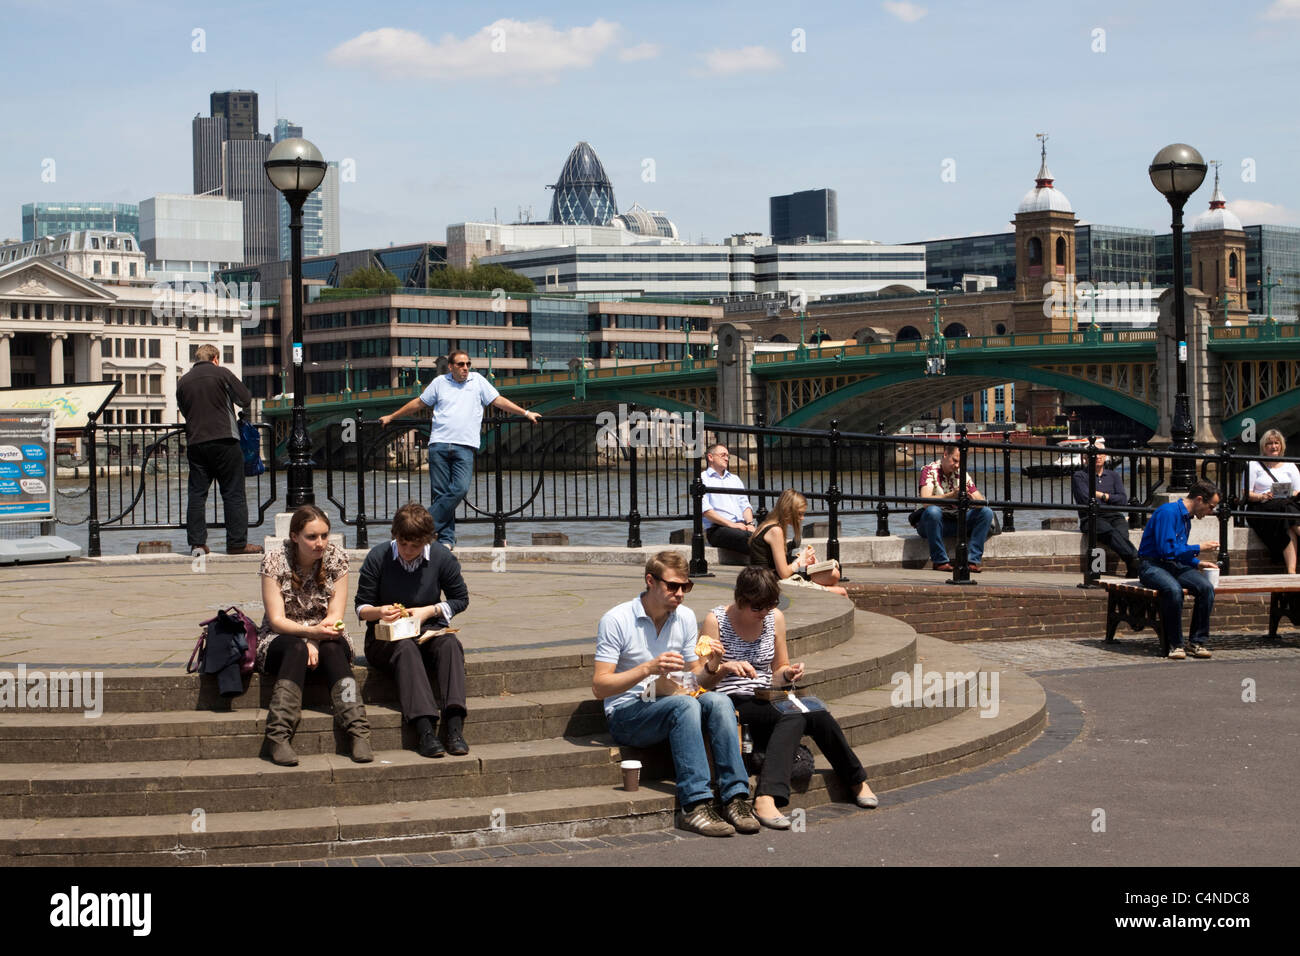 People eating lunch on the steps of Bankside Pier, London, England, UK - Stock Image